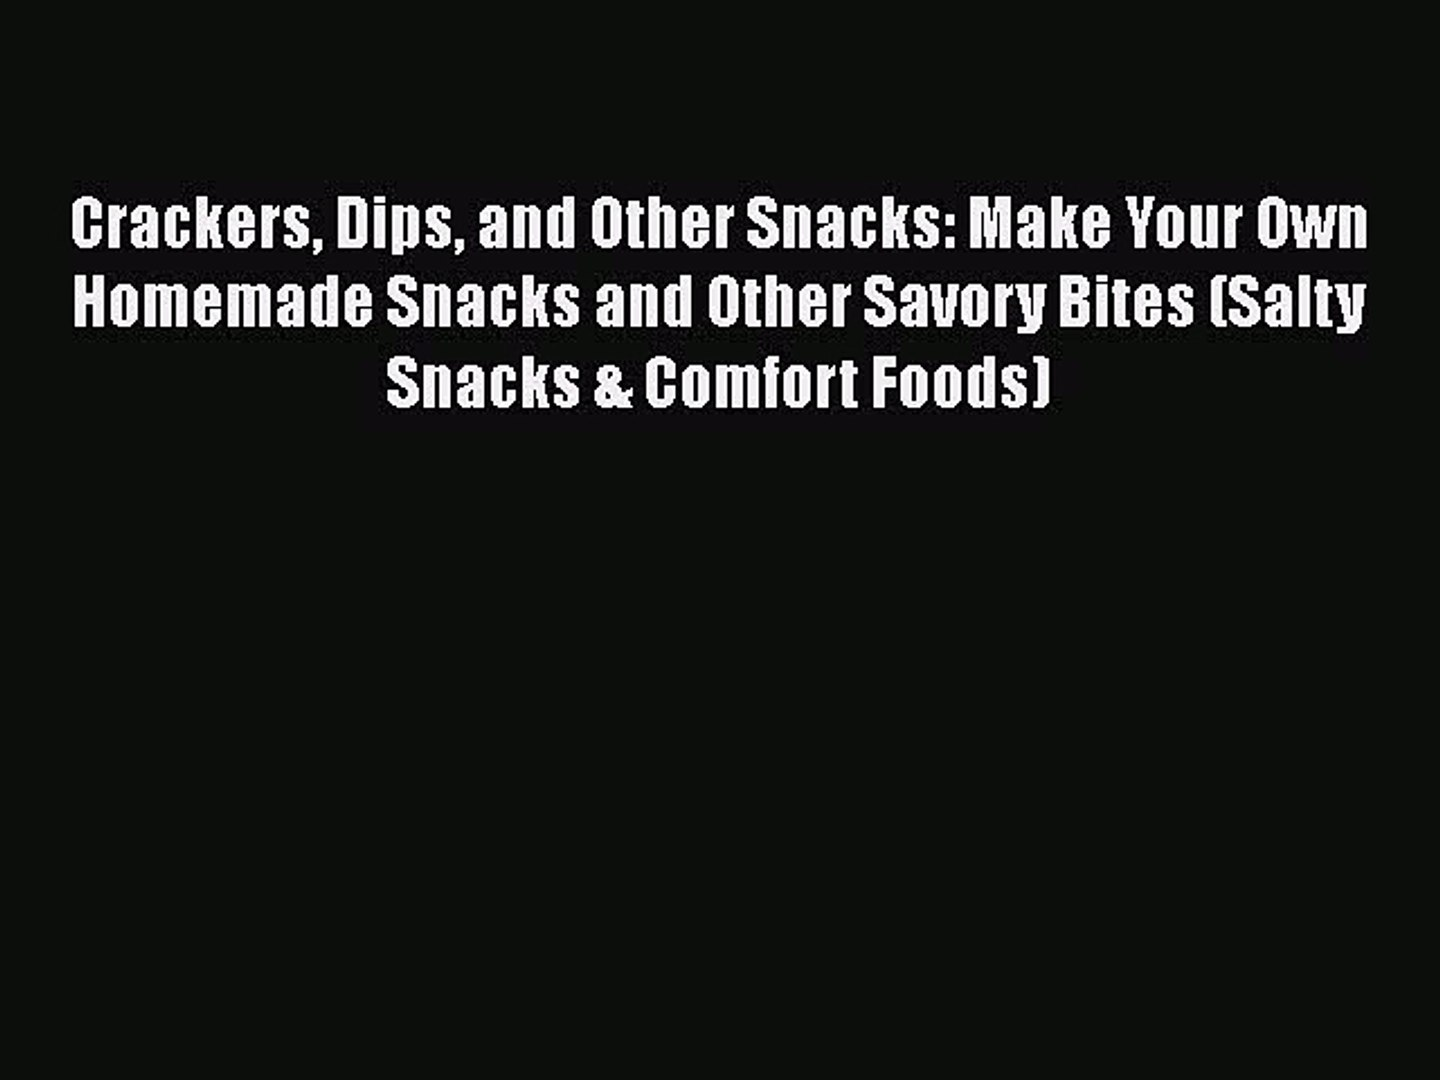 [Read Book] Crackers Dips and Other Snacks: Make Your Own Homemade Snacks and Other Savory